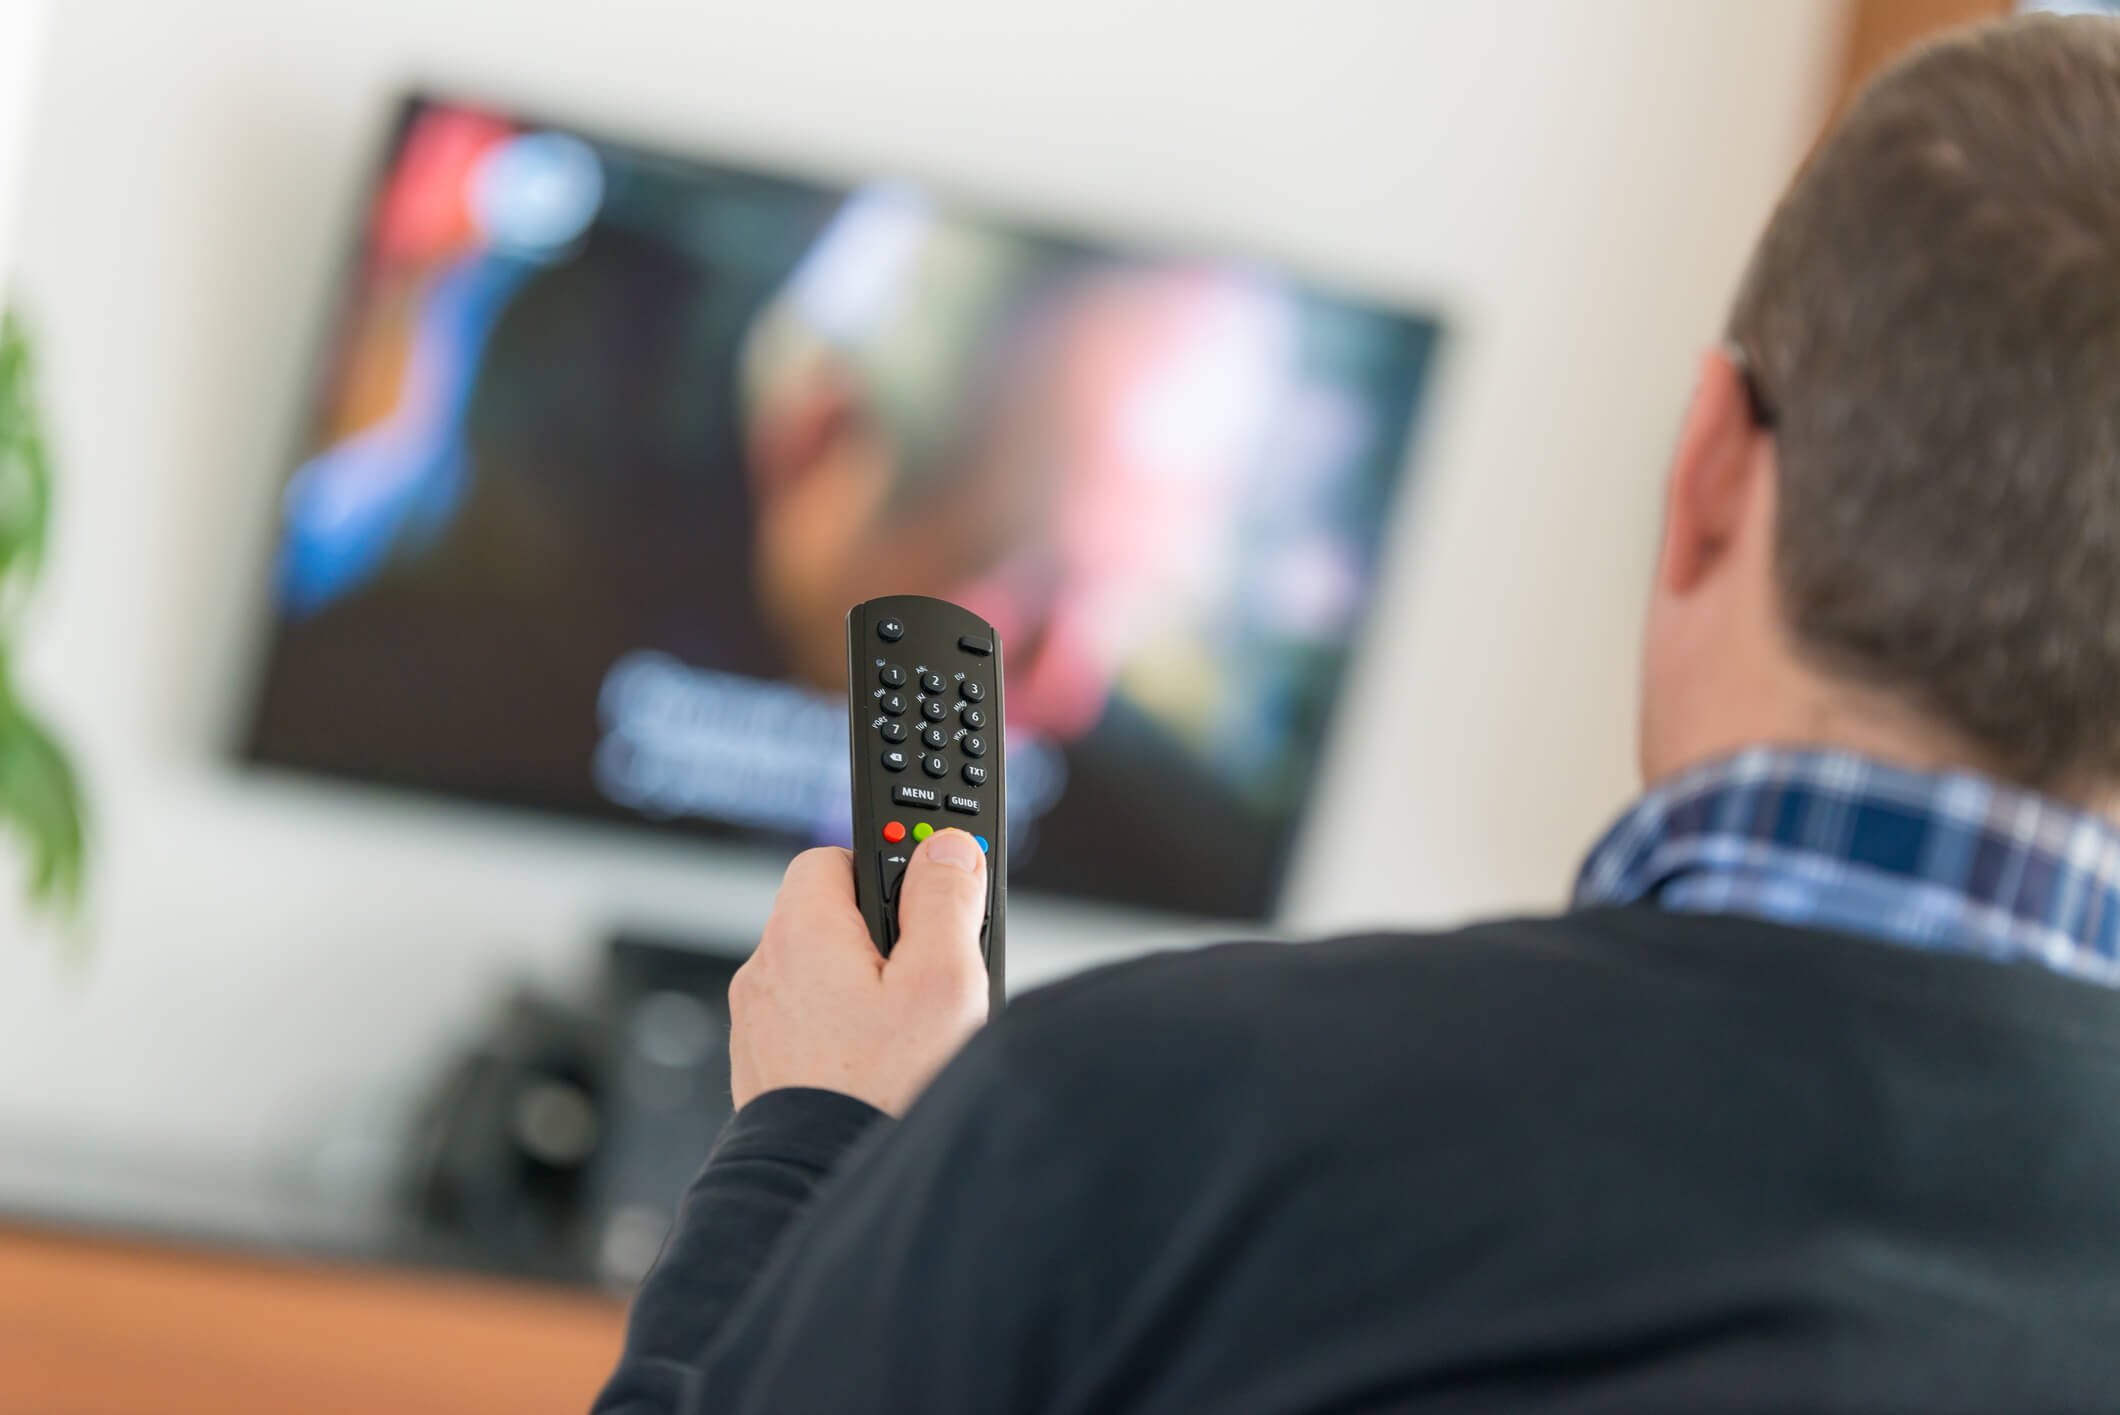 Man controlling TV with remote